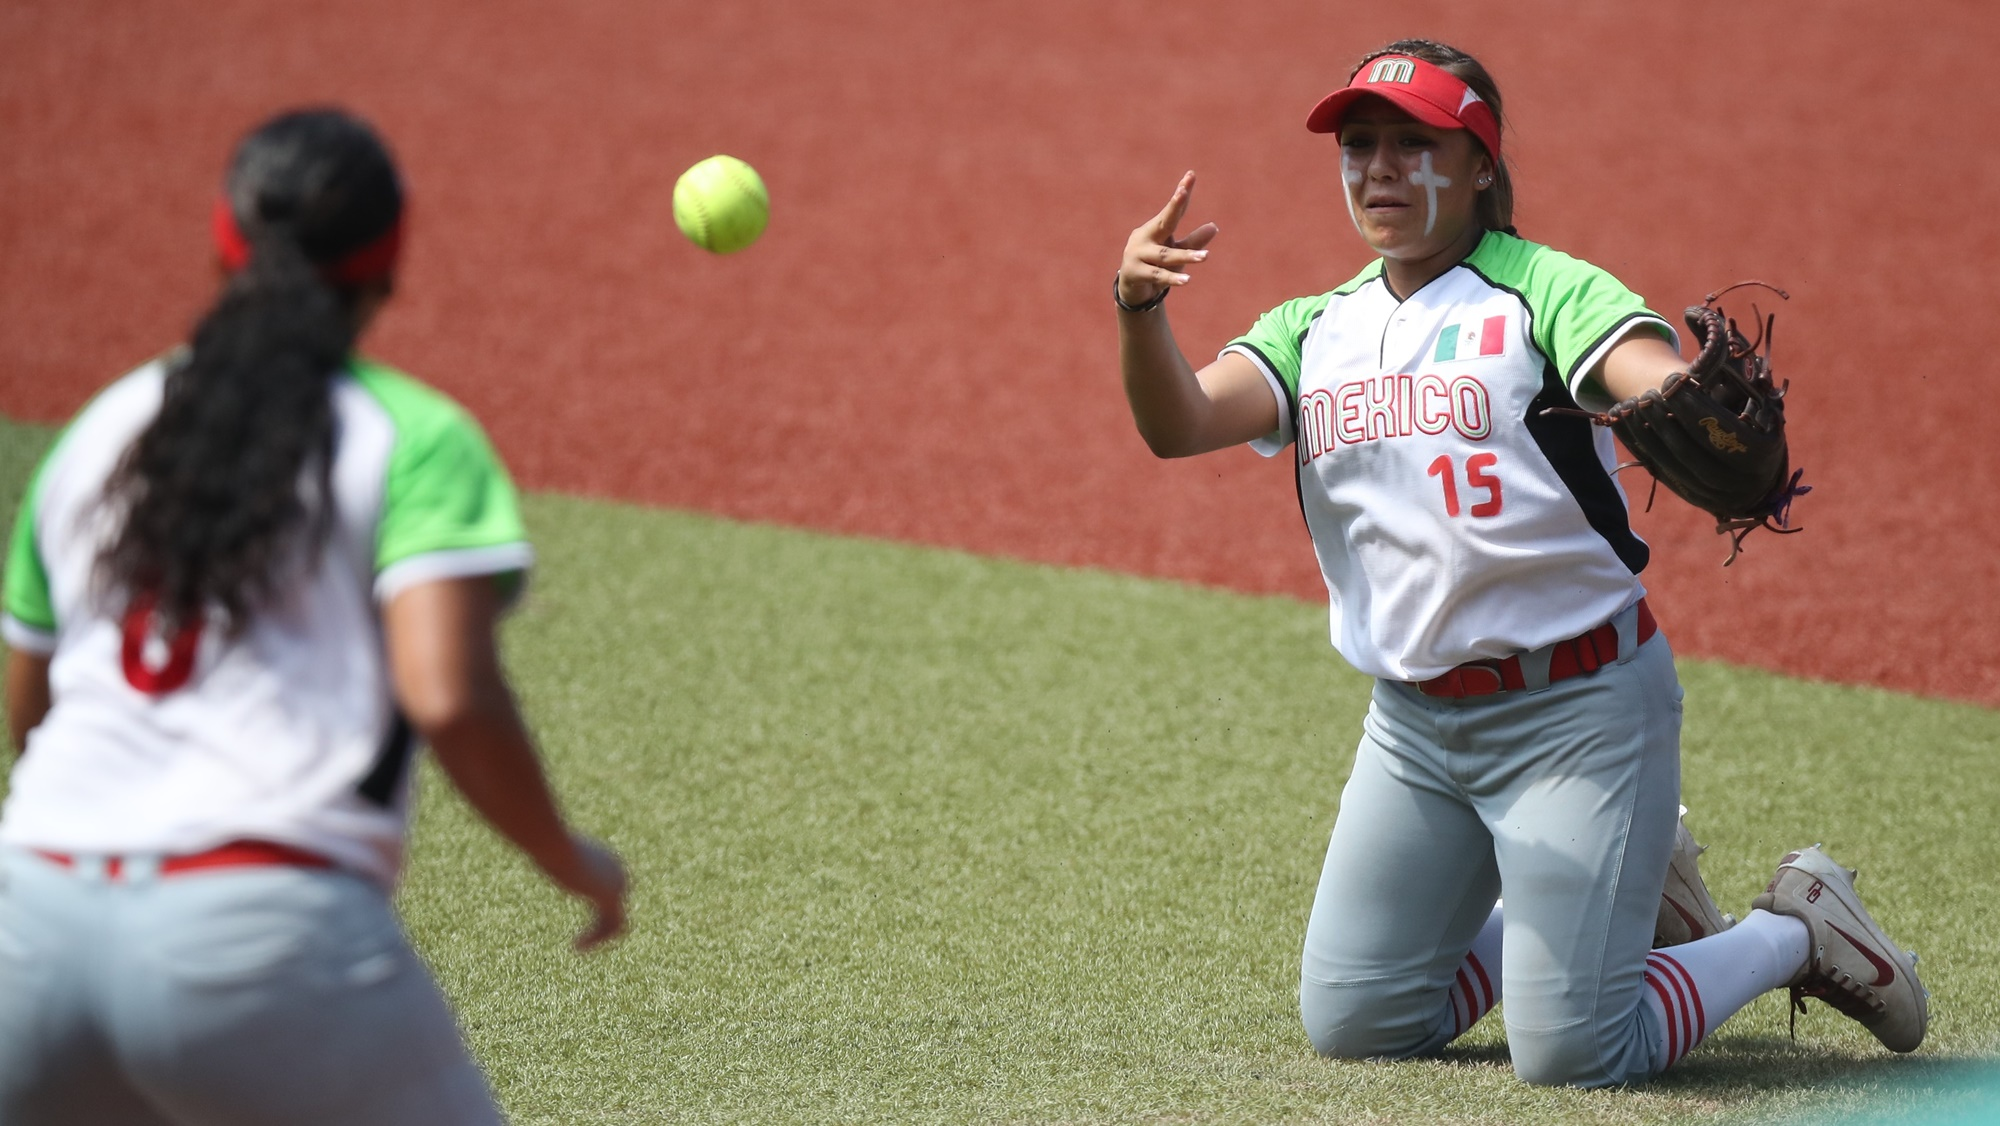 An assiste by Eliiya Flores to Victoria Vidales: Mexico played some very good defense